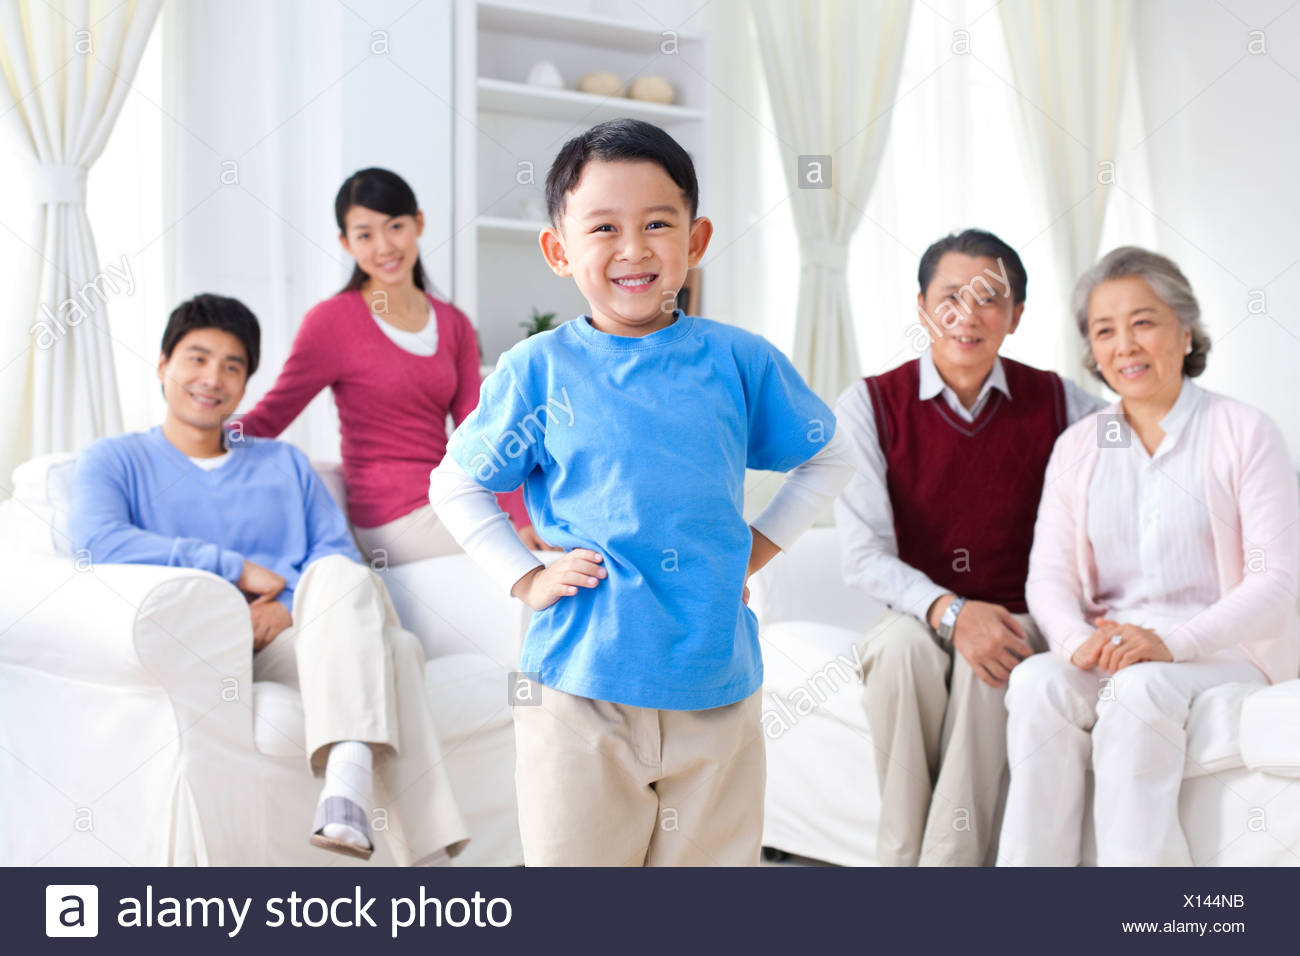 Young Chinese boy with hands on hips, parents and grandparents behind him - Stock Image